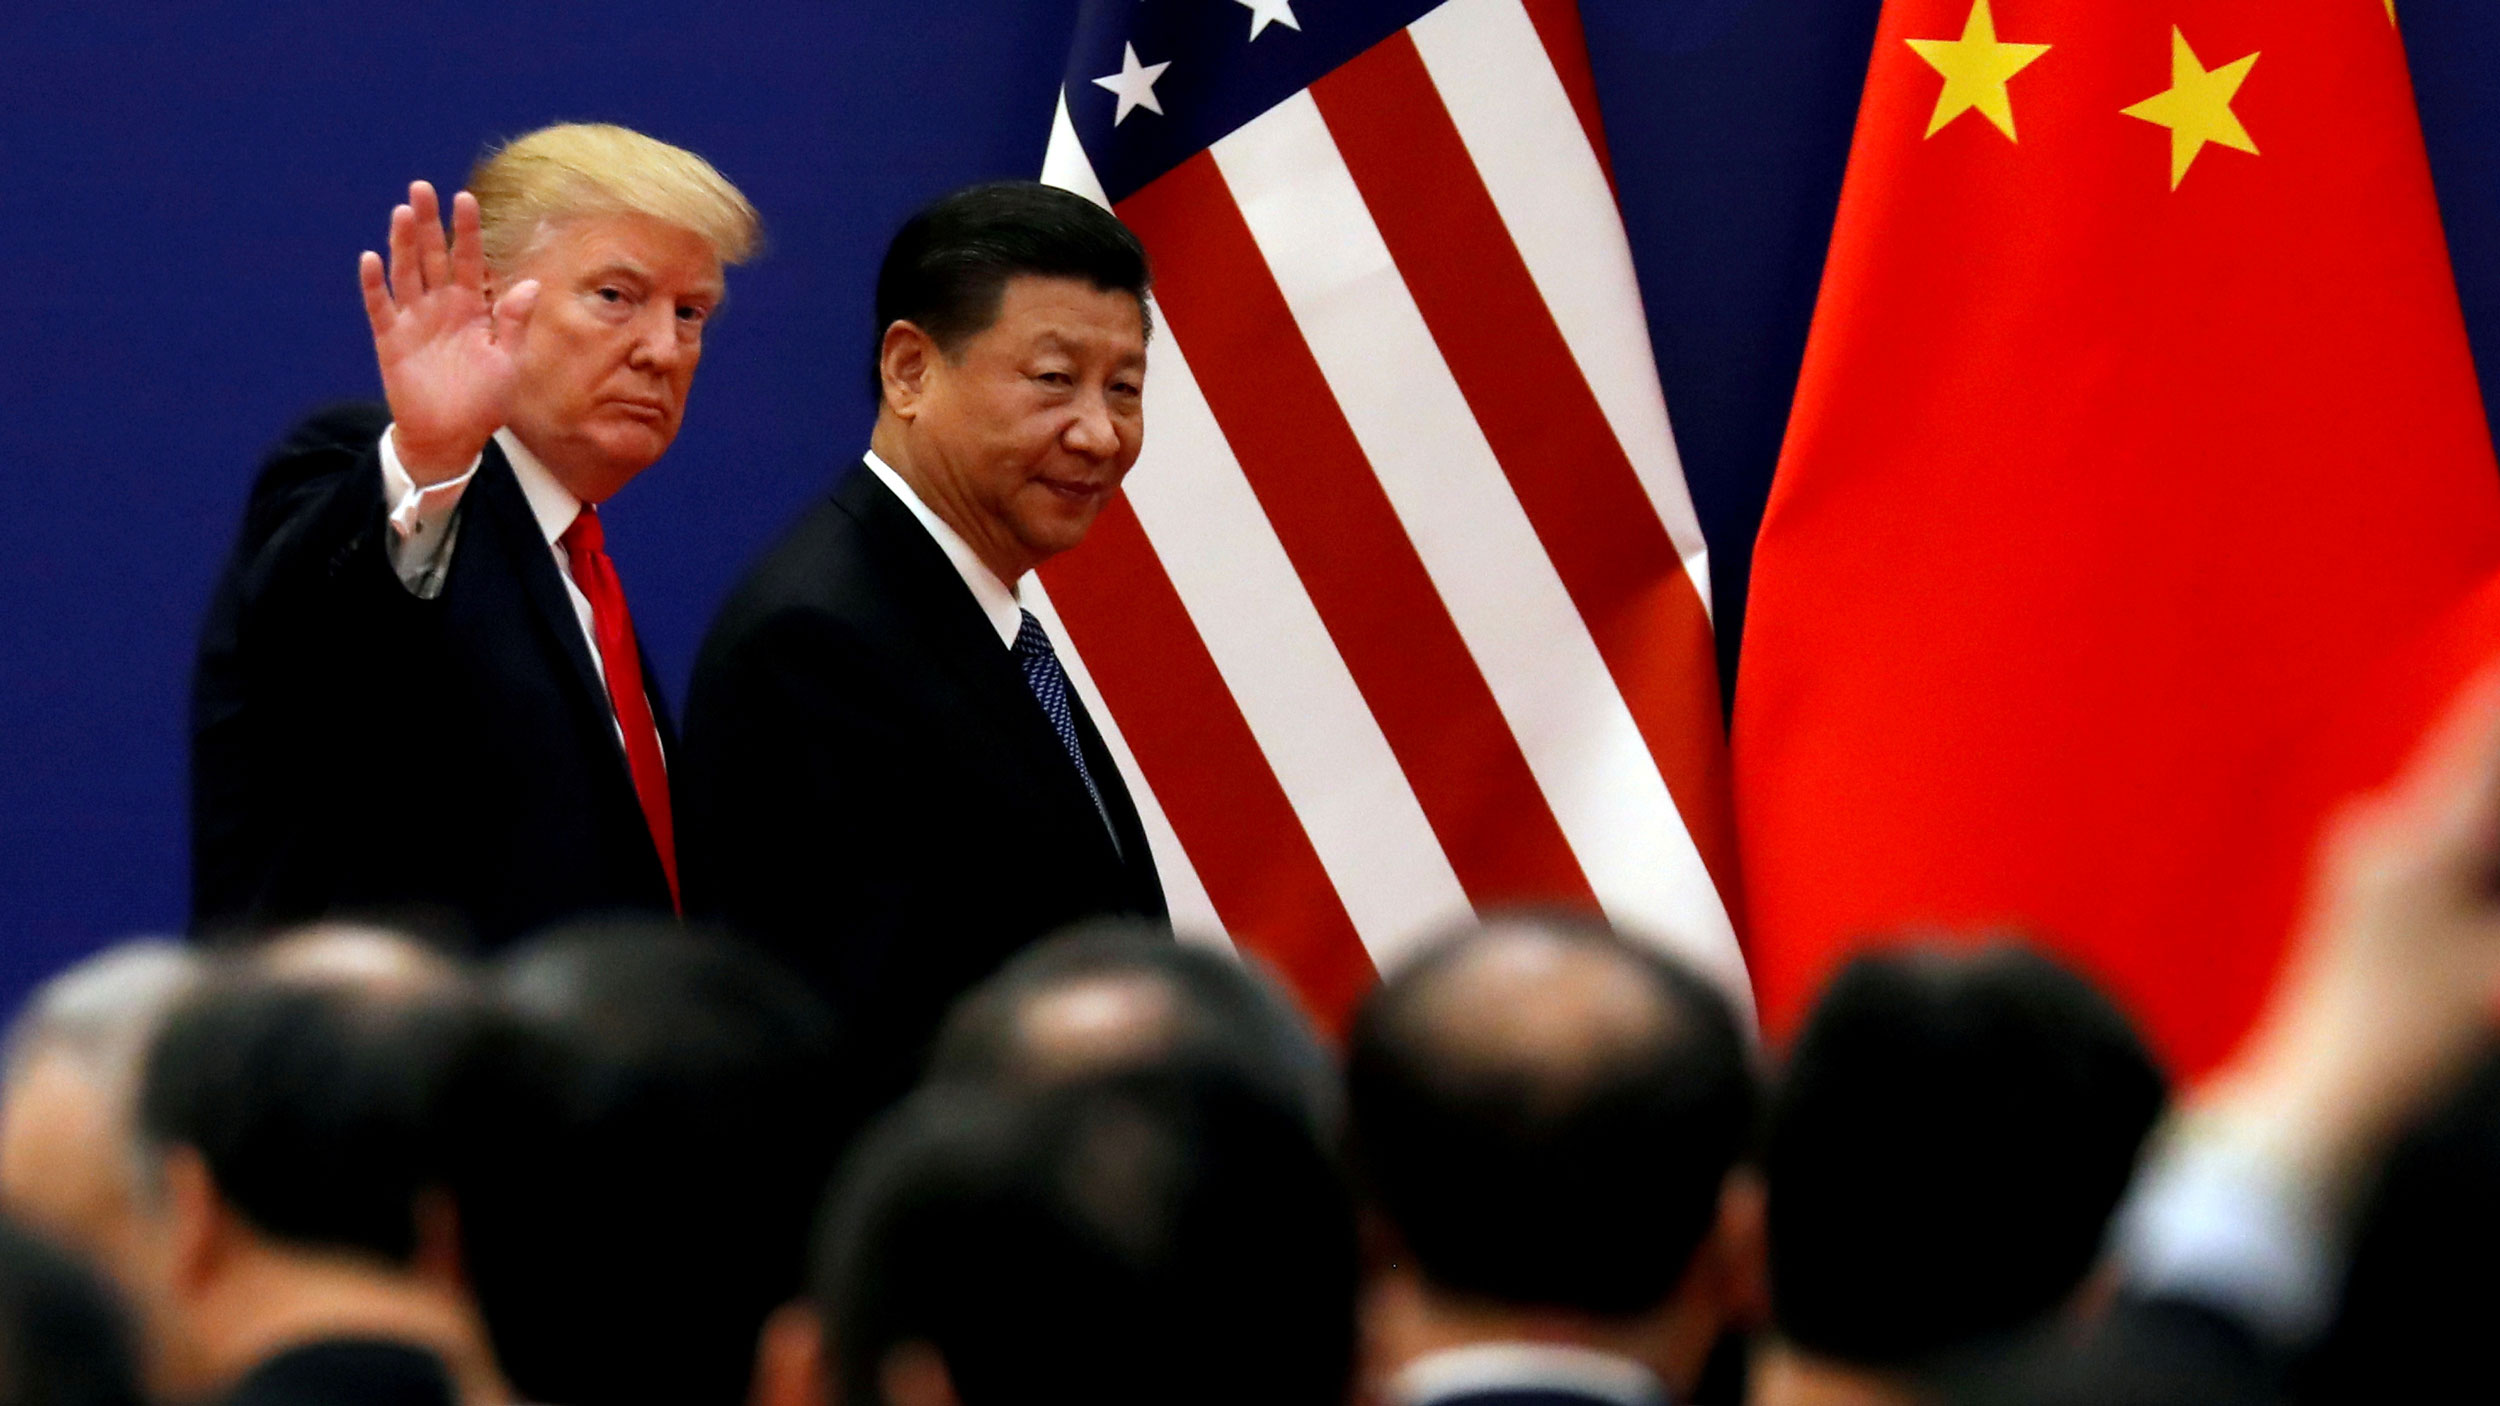 US President Donald Trump and China's President Xi Jinping are shown walking with the US and China flags in the background and Trump waving.